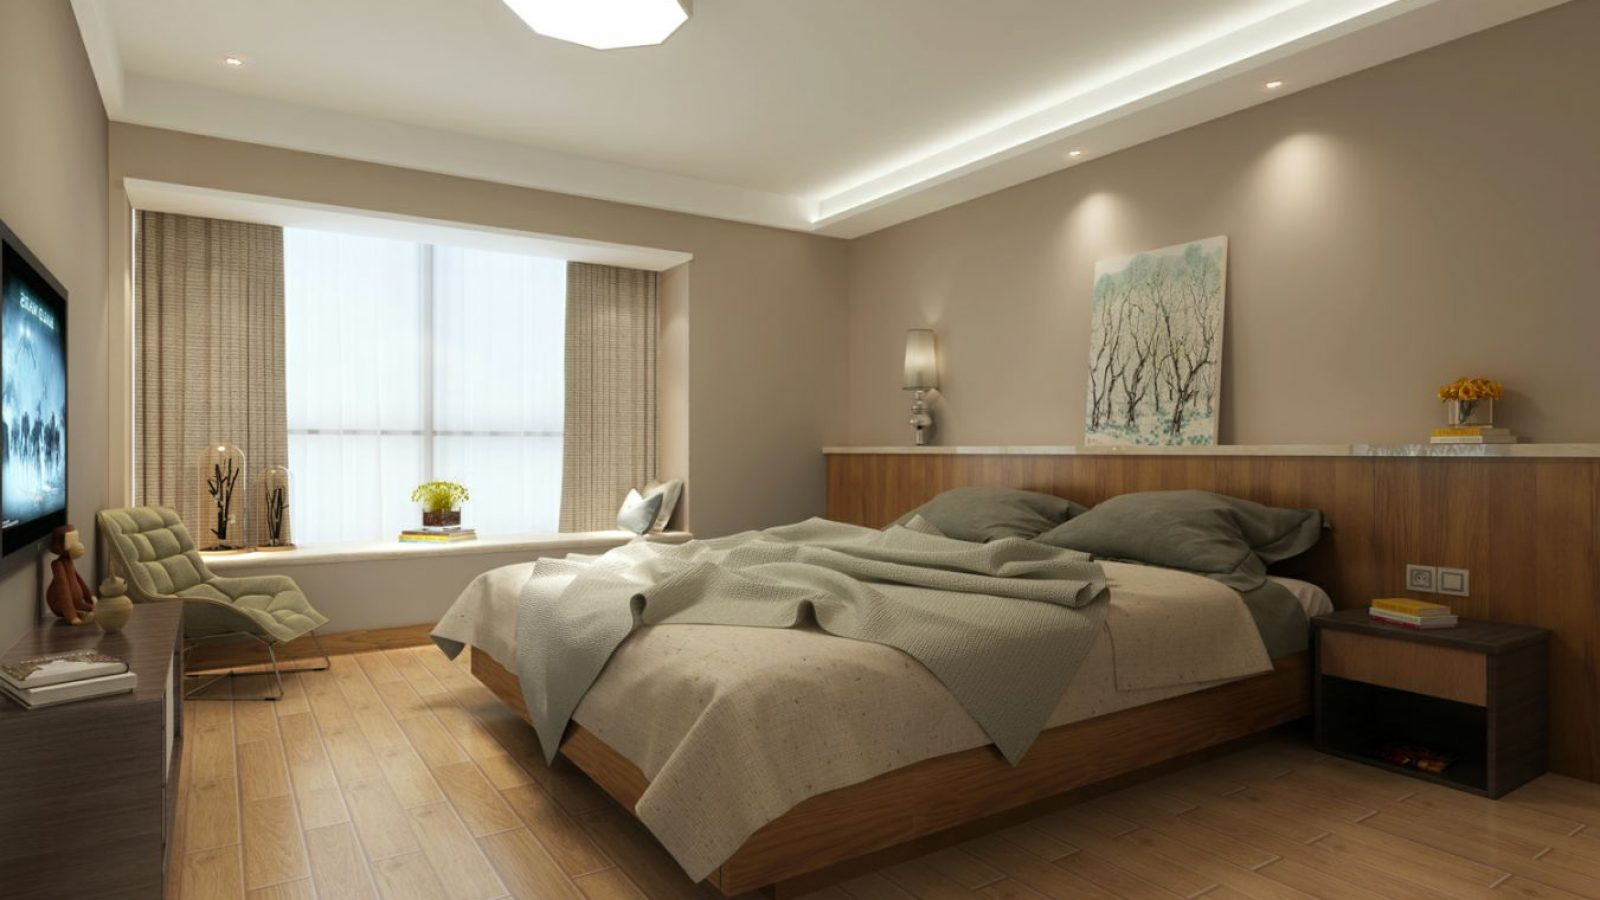 Architectural_Visualization_3D_Rendering_AIMIRCG.COM_100793